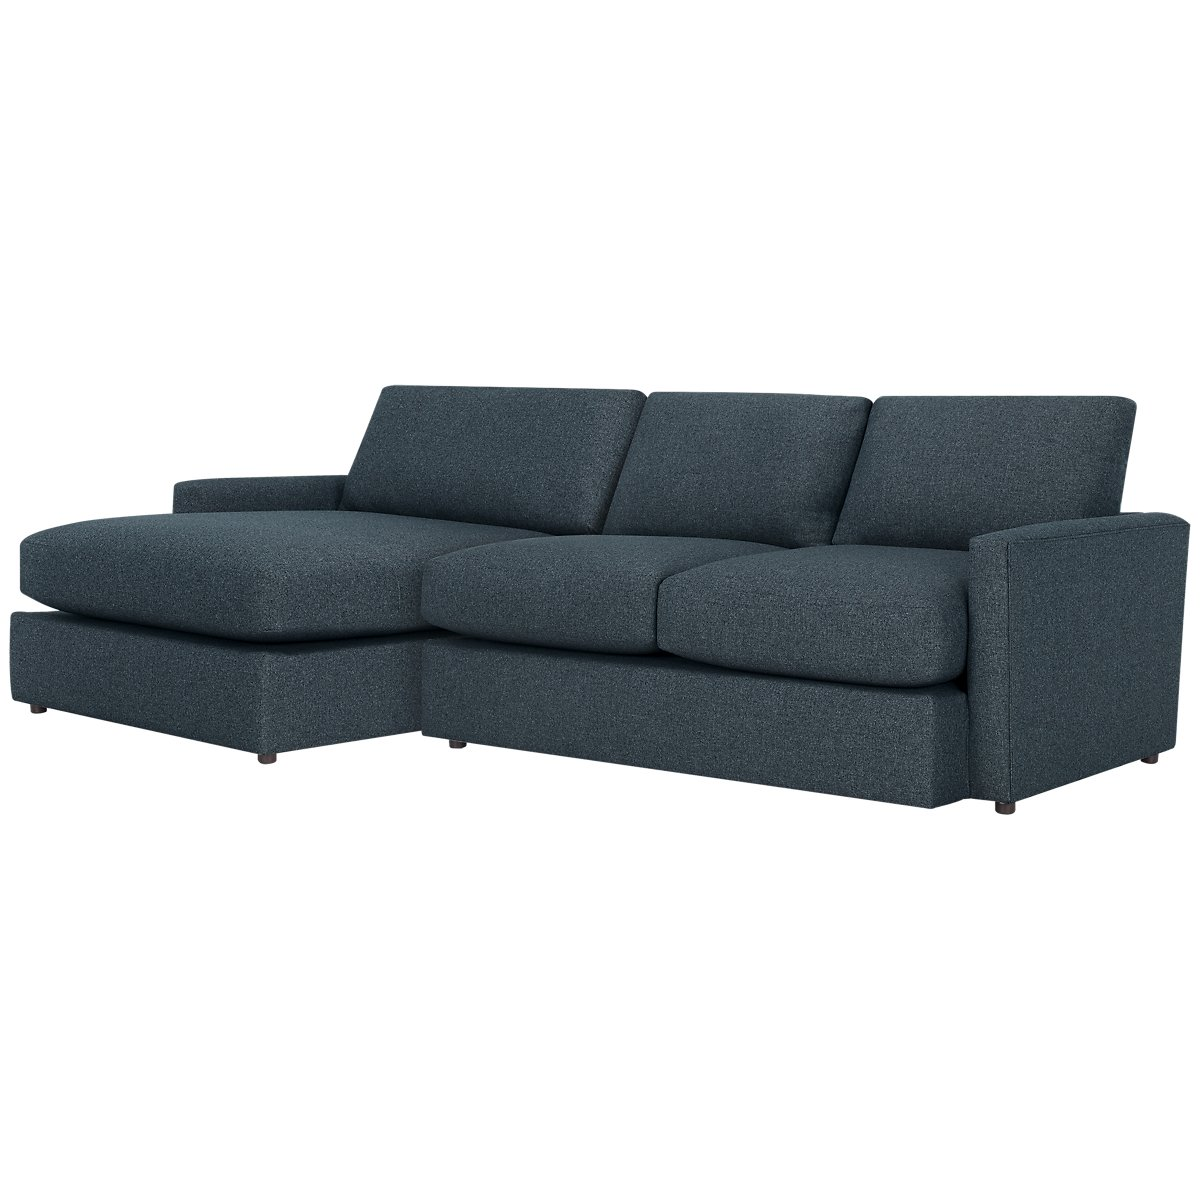 Small Chaise For Bedroom City Furniture Living Room Furniture Sectional Sofas